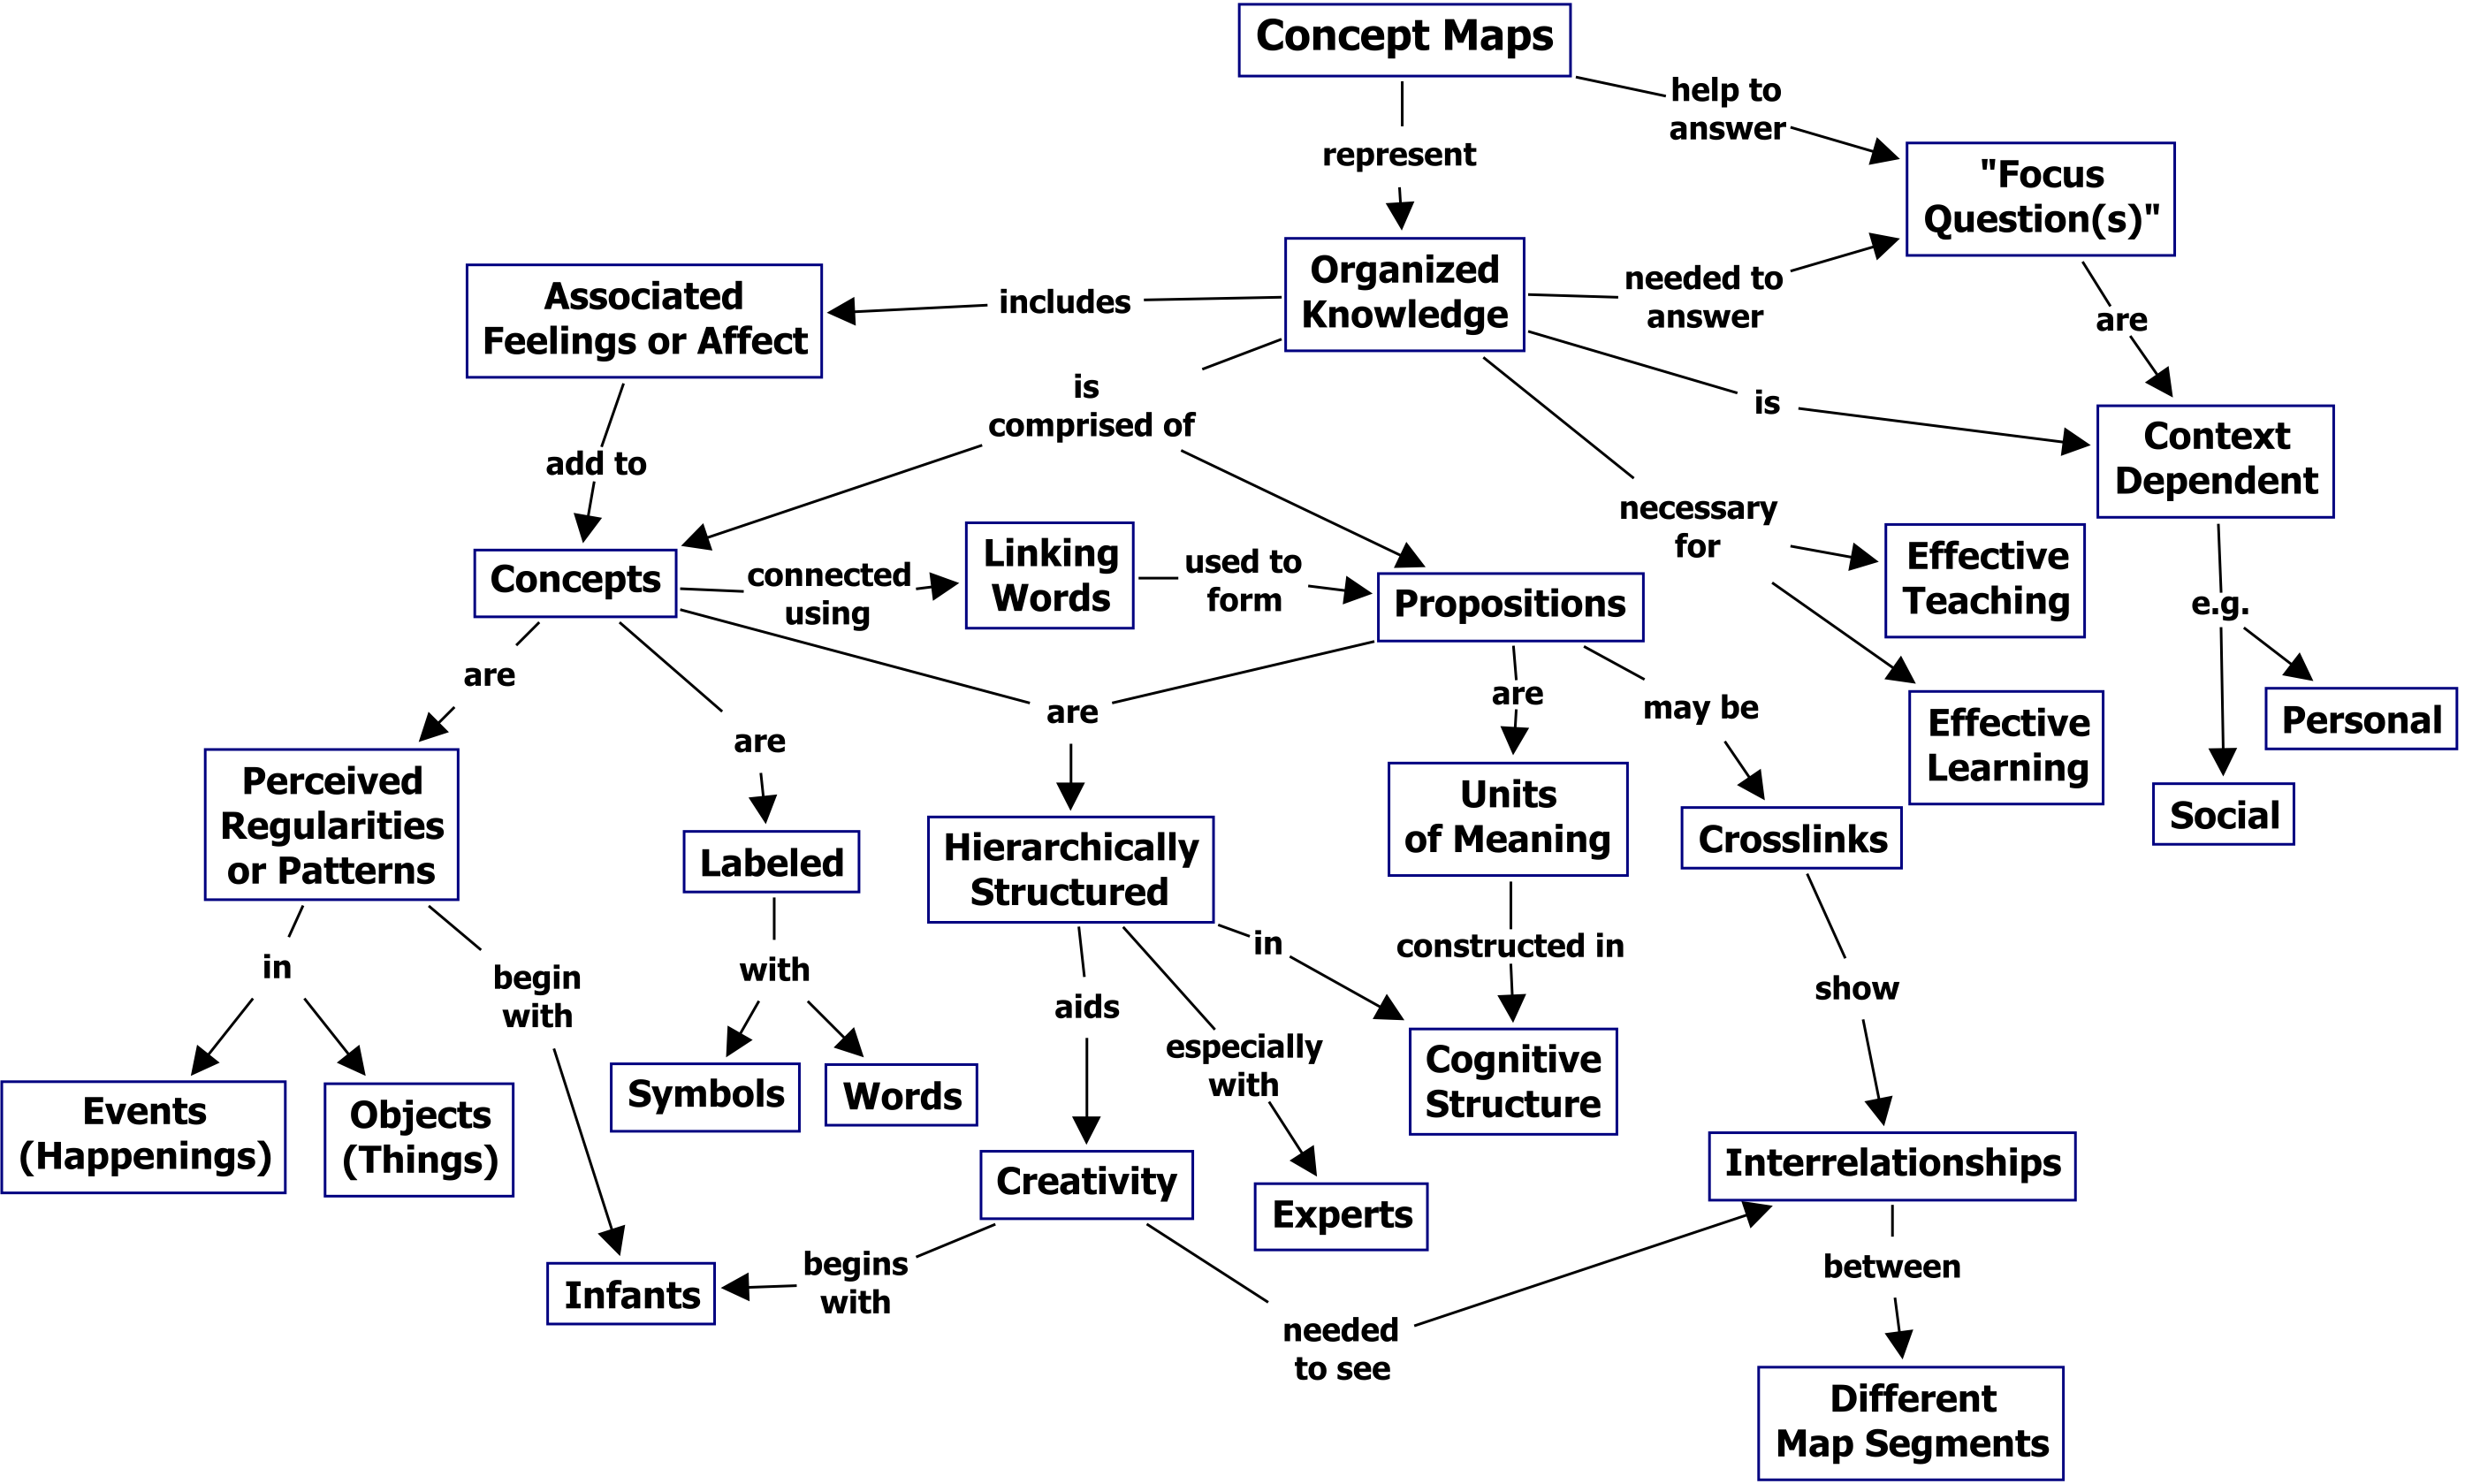 figure-1-a-concept-map-showing-the-key-features-of-concept-maps-3